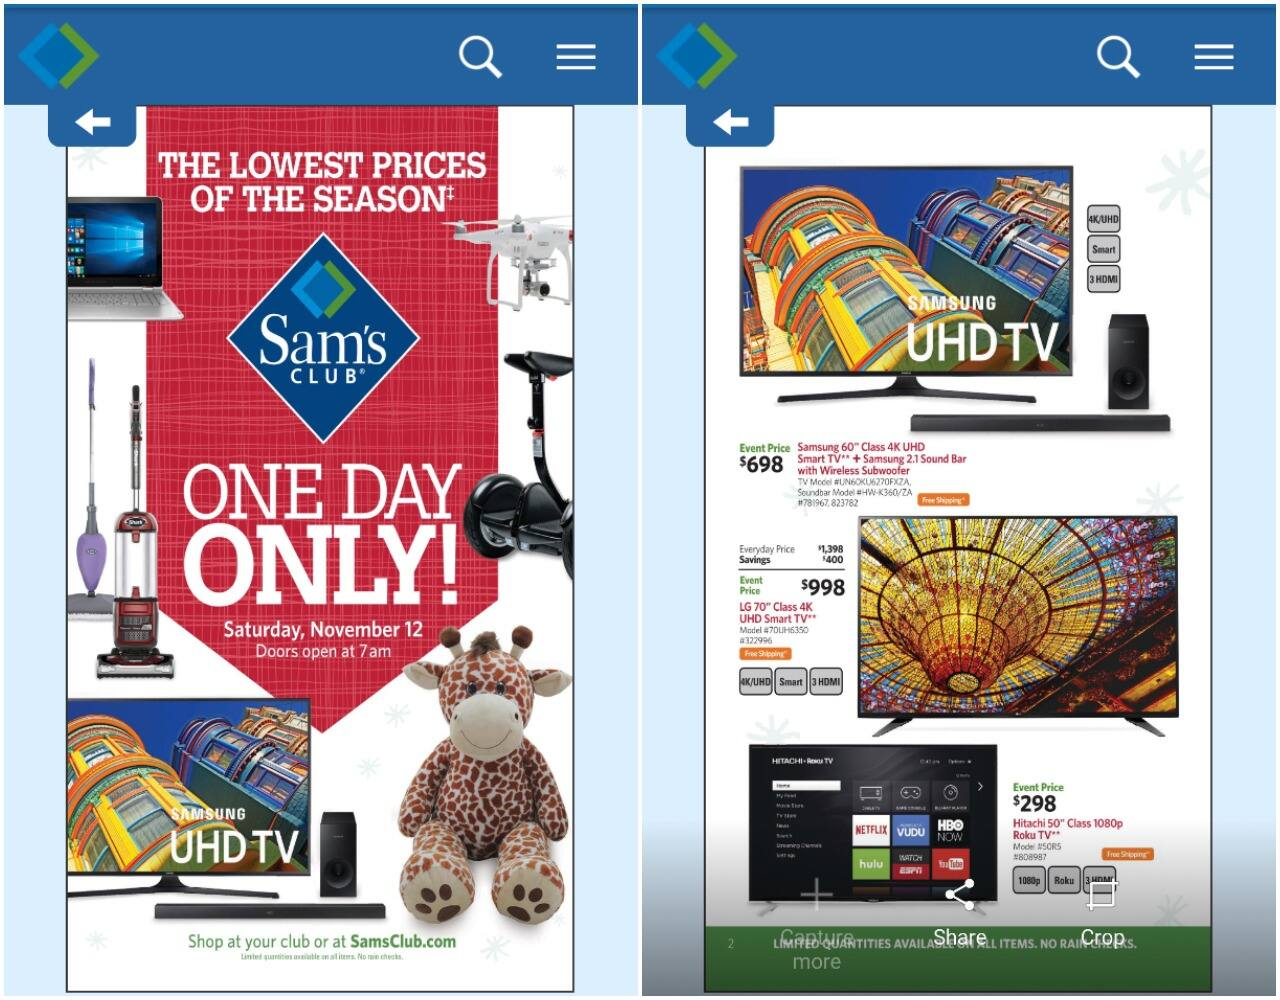 Sam's Club One Day event Ad published